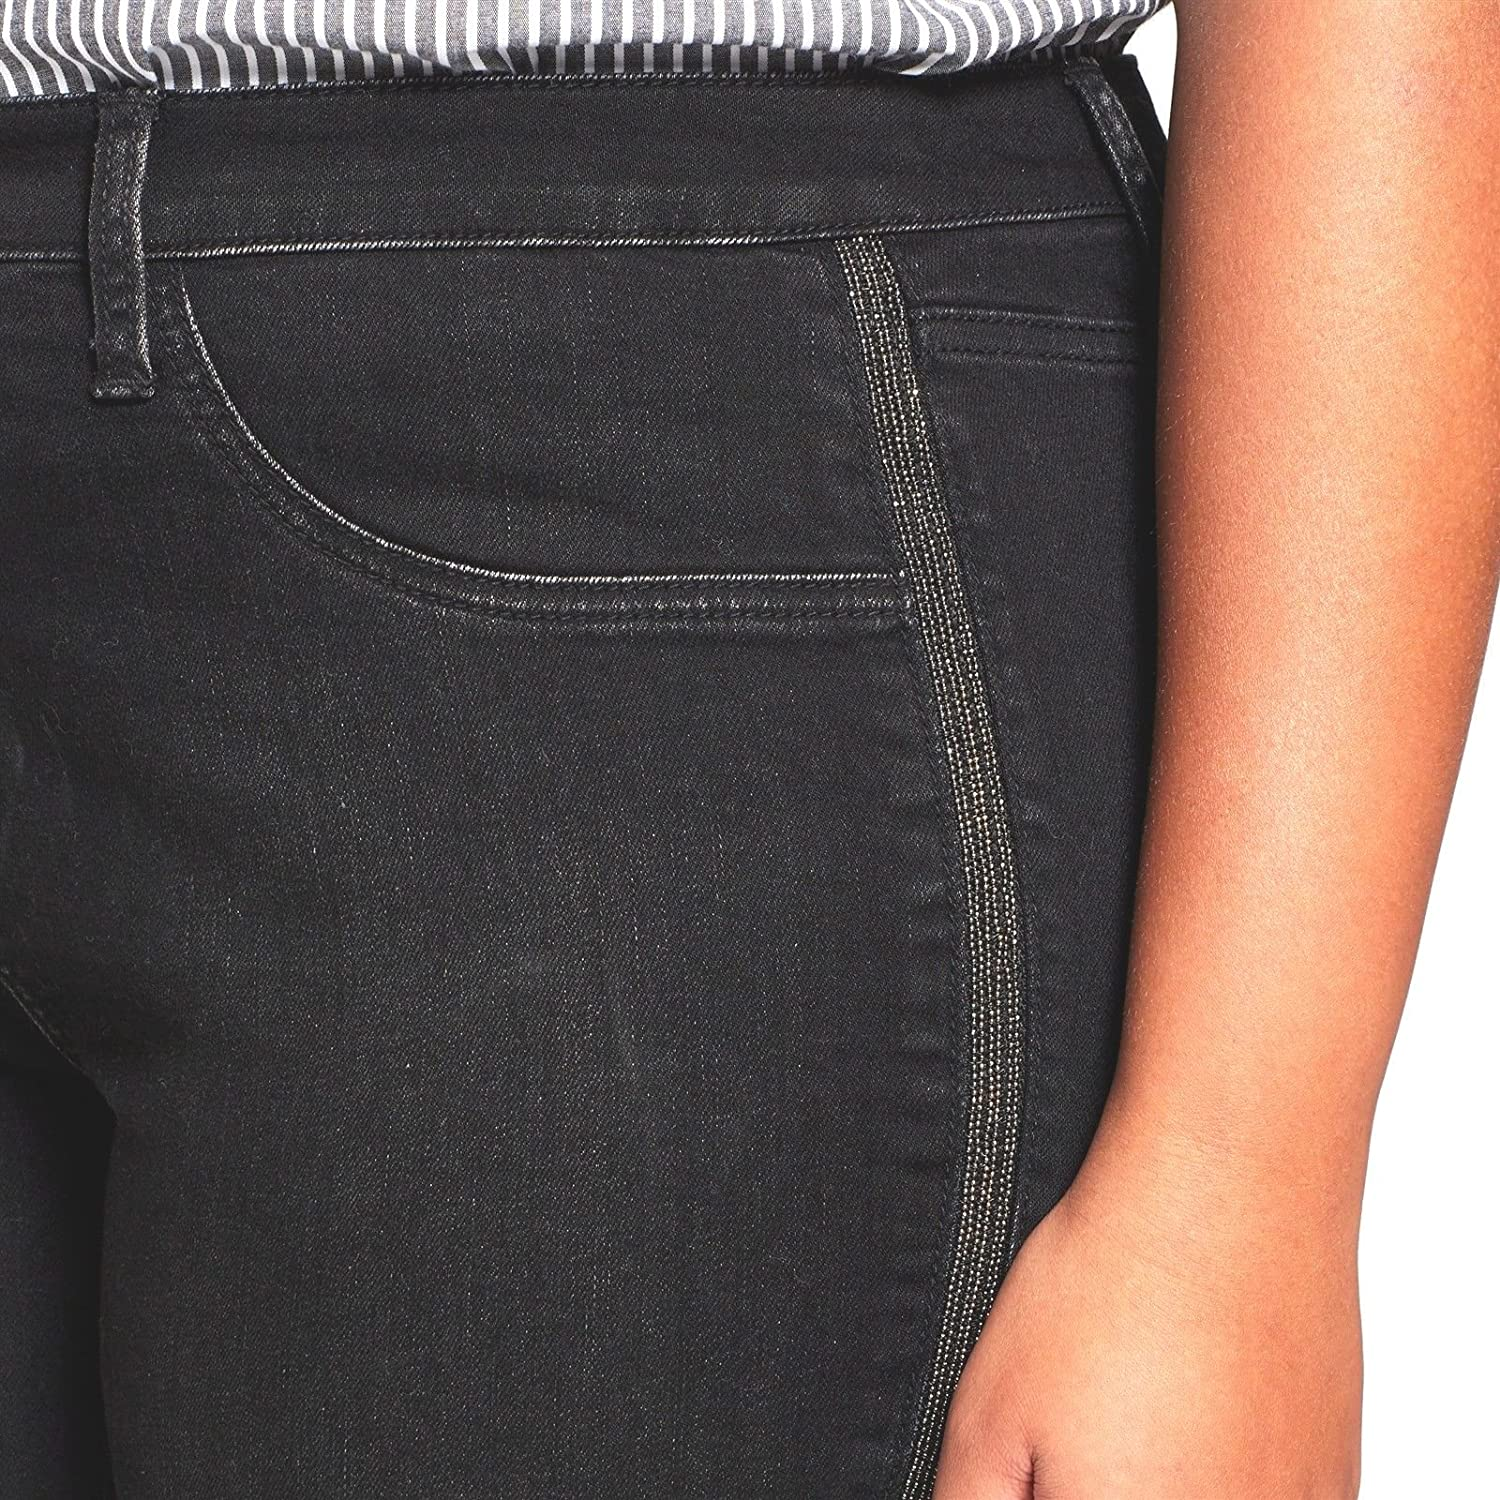 9920cdfb91f7b Ava & Viv Women's Plus Size Mid Rise Skinny Power Stretch Jegging - Black  Solid - at Amazon Women's Jeans store